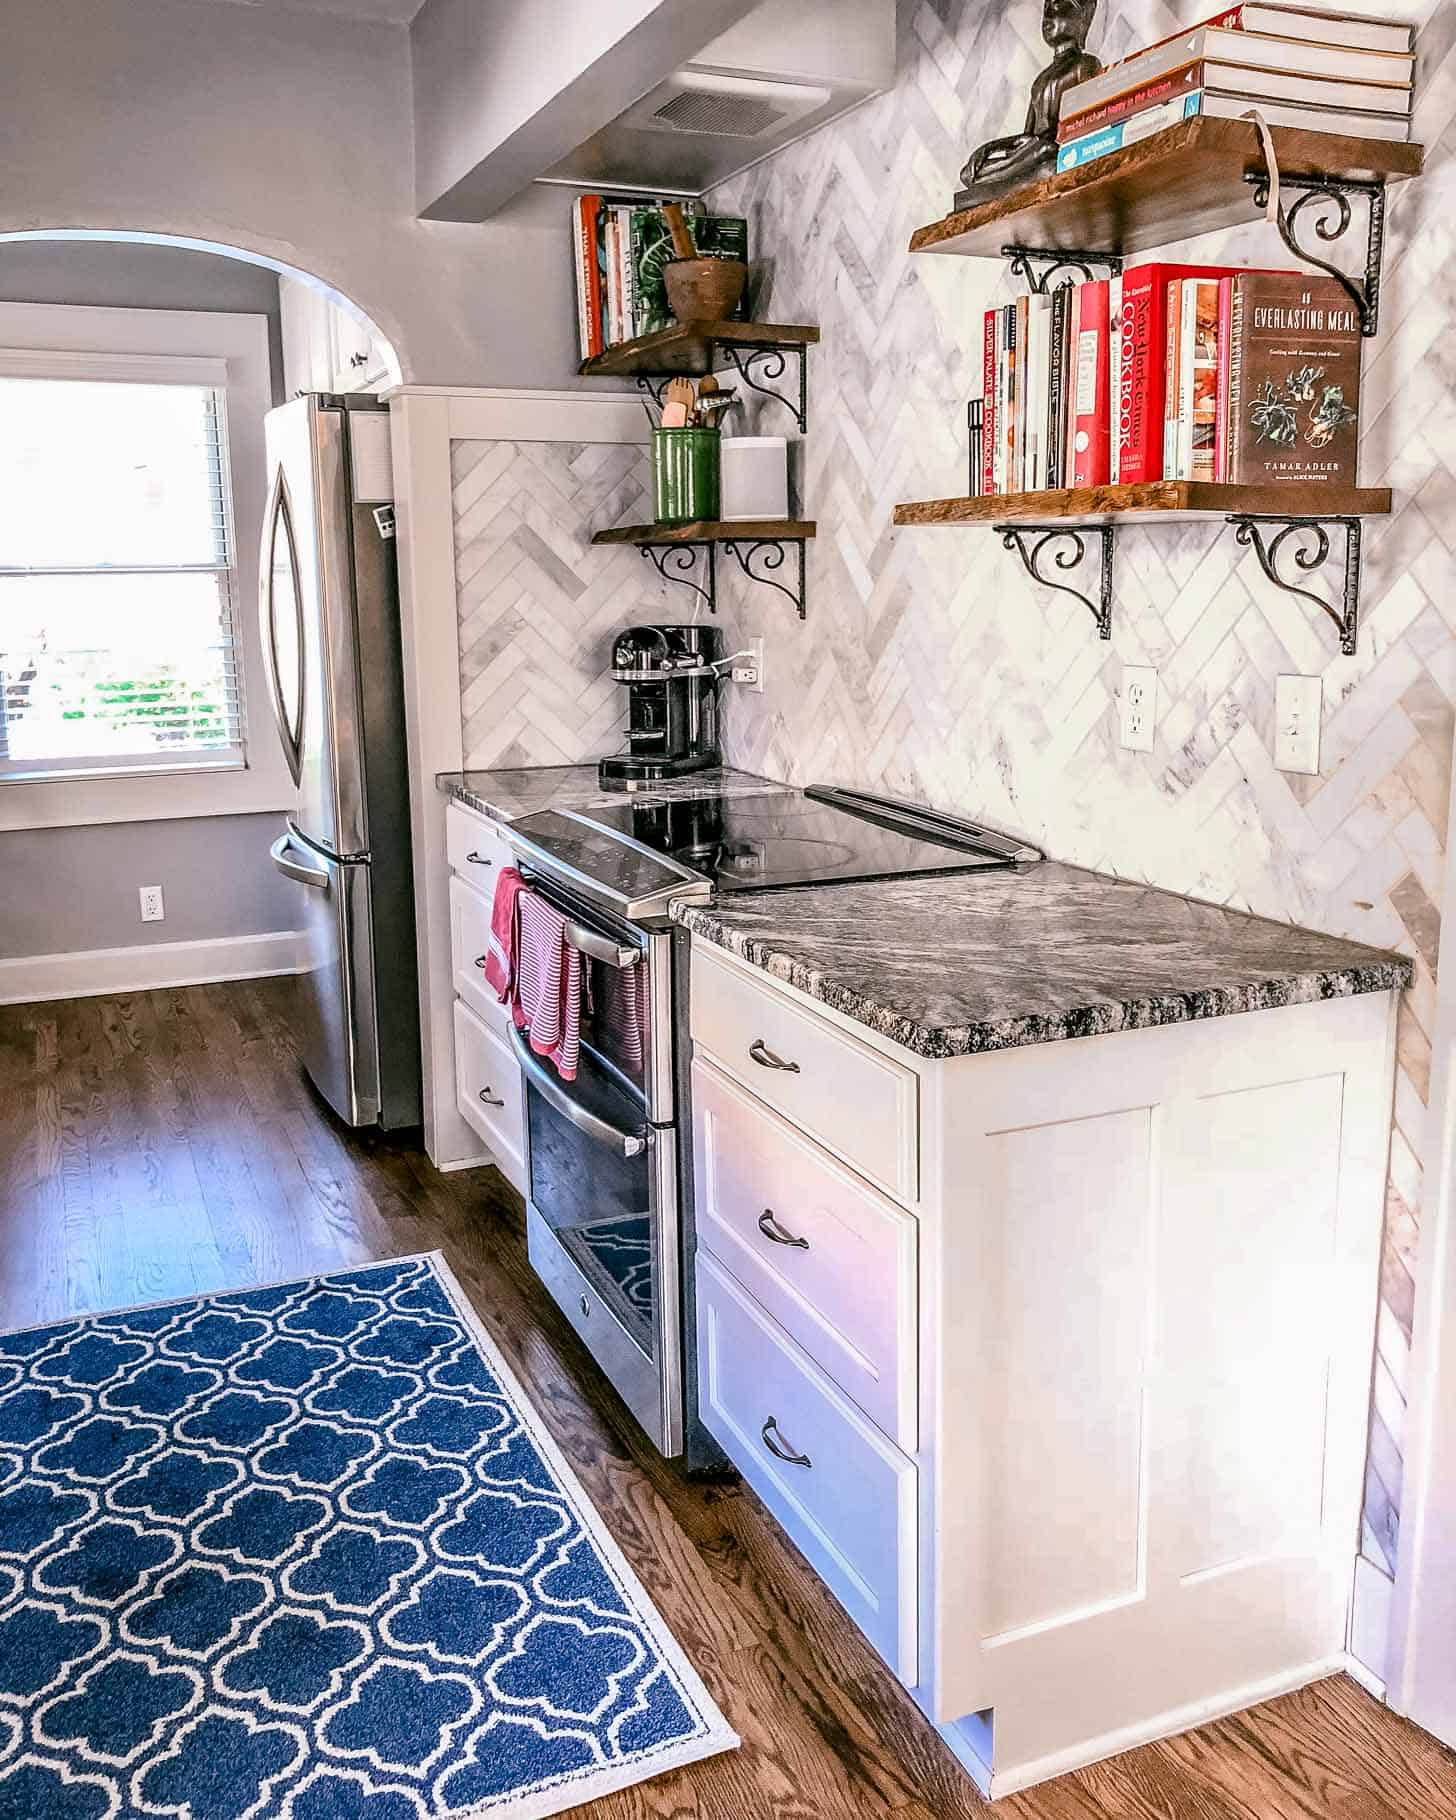 stove and cabinets in a white kitchen